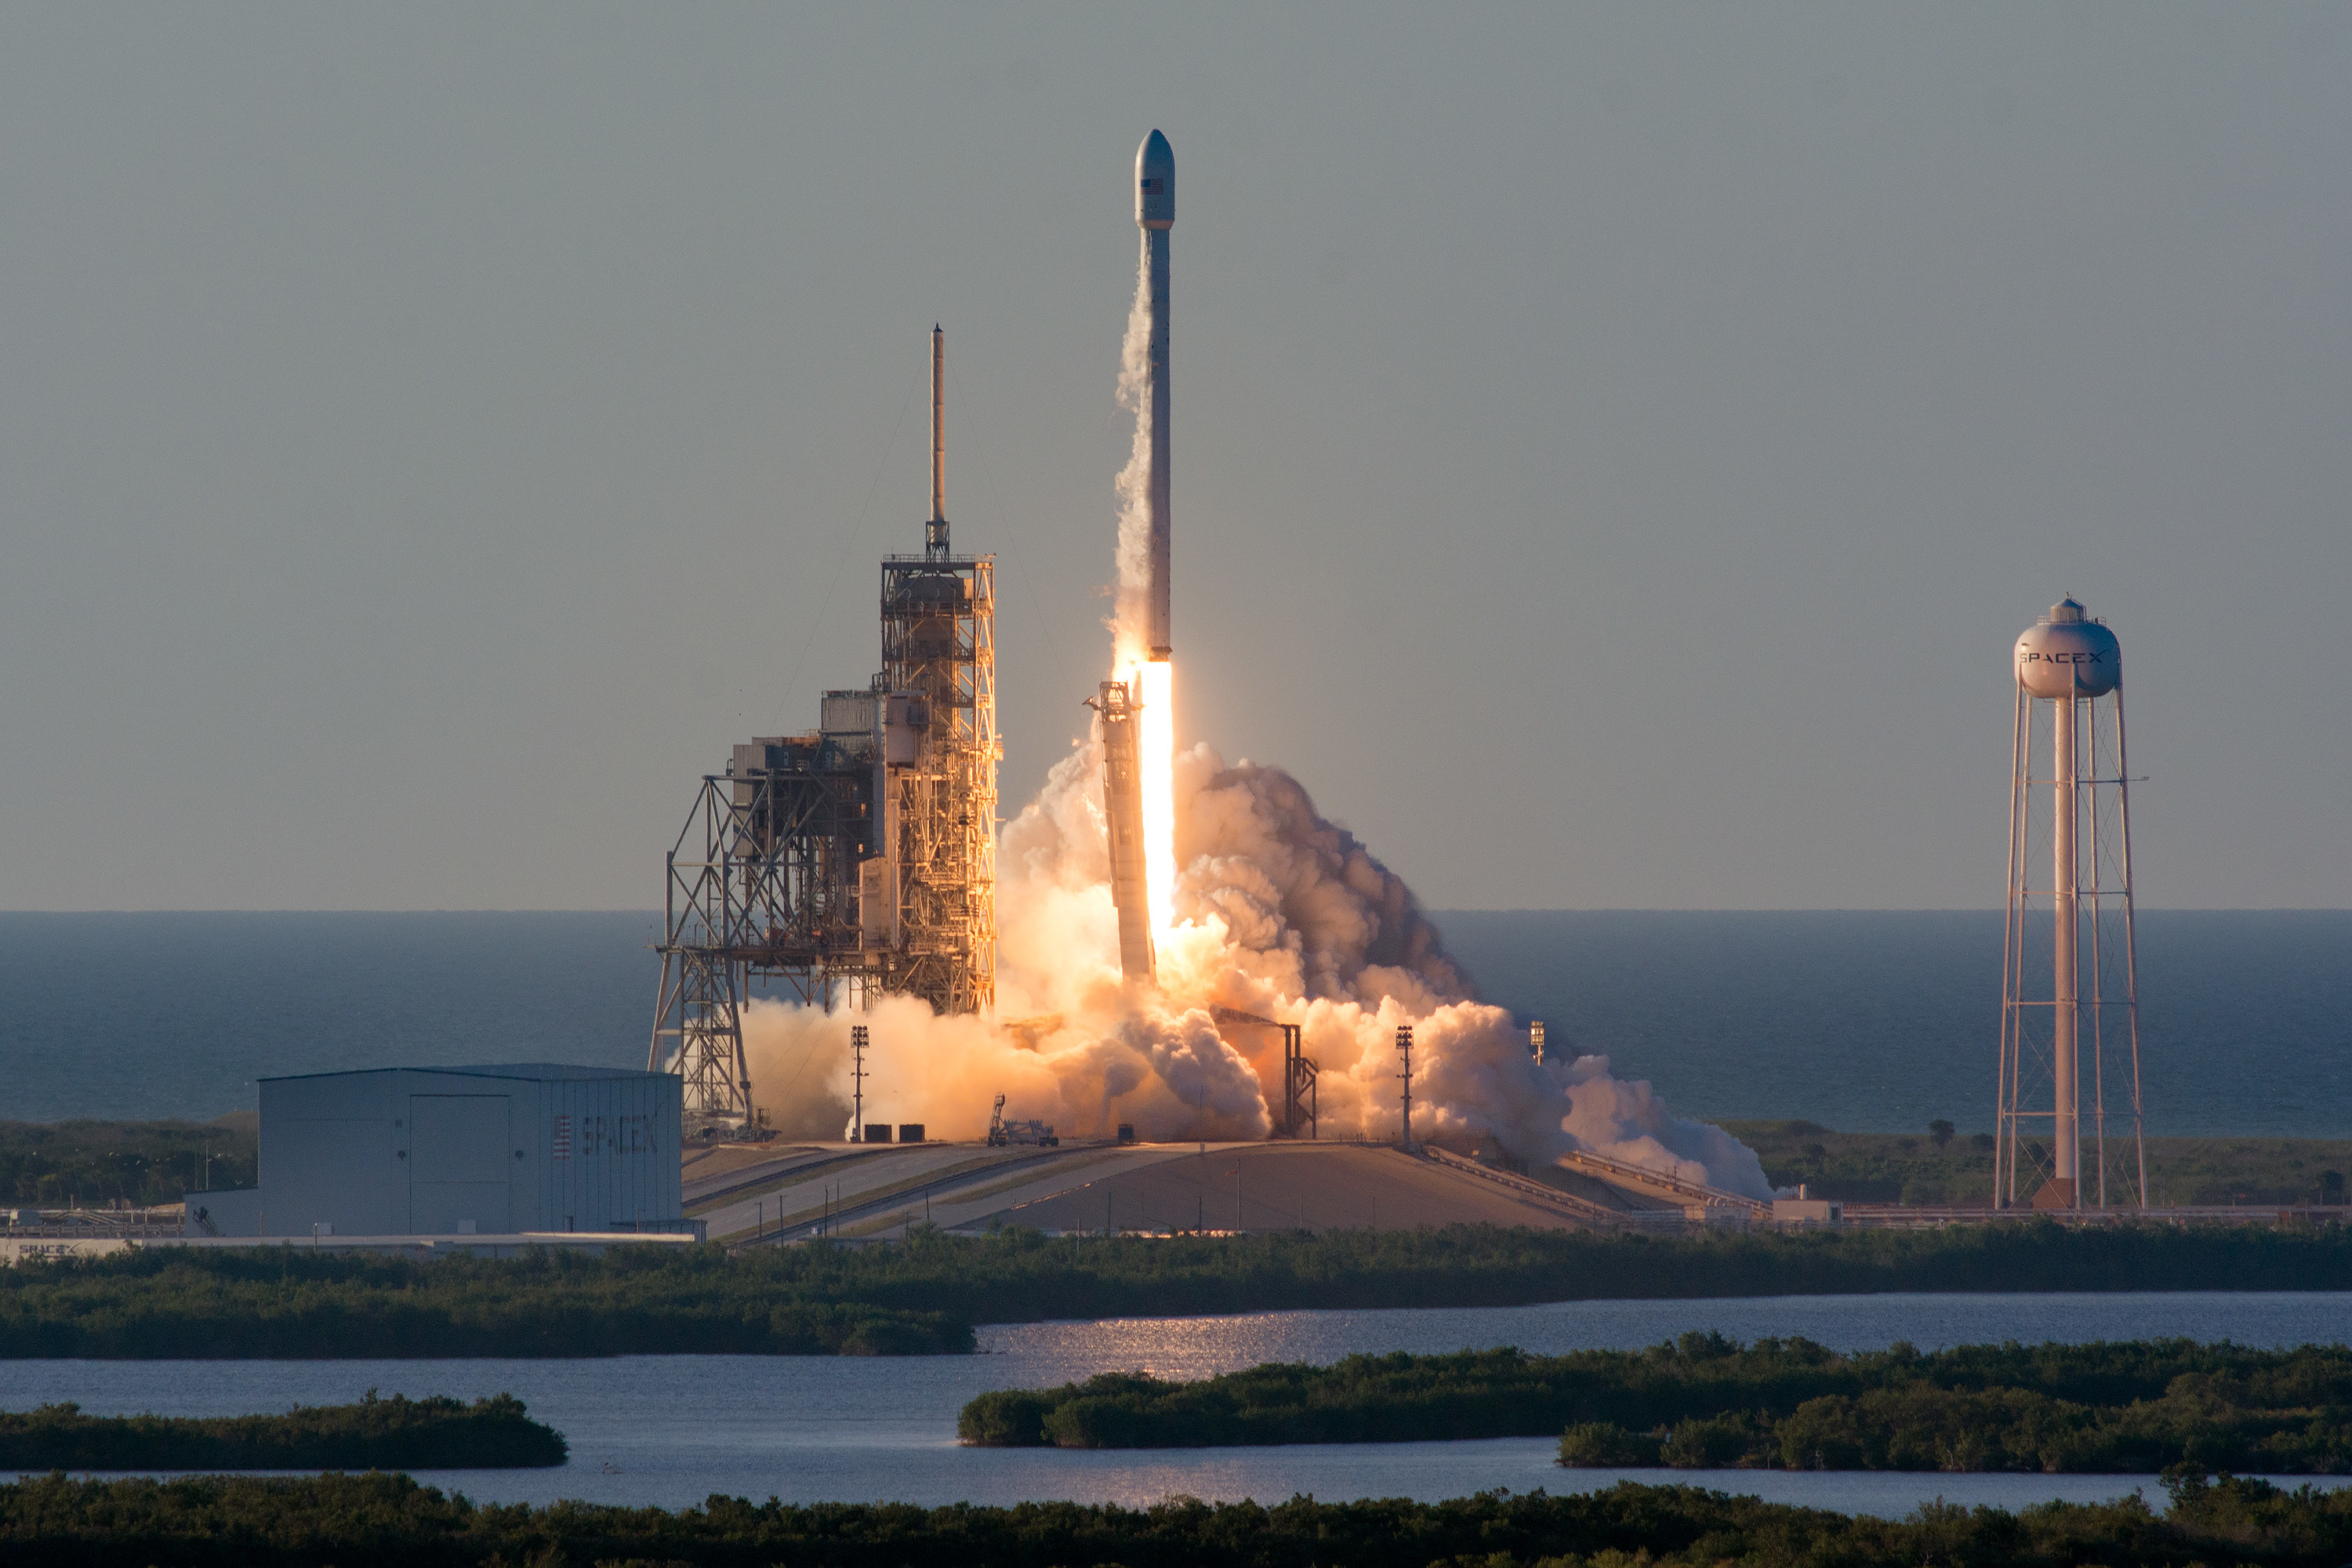 SpaceX marks 6th successful launch this year